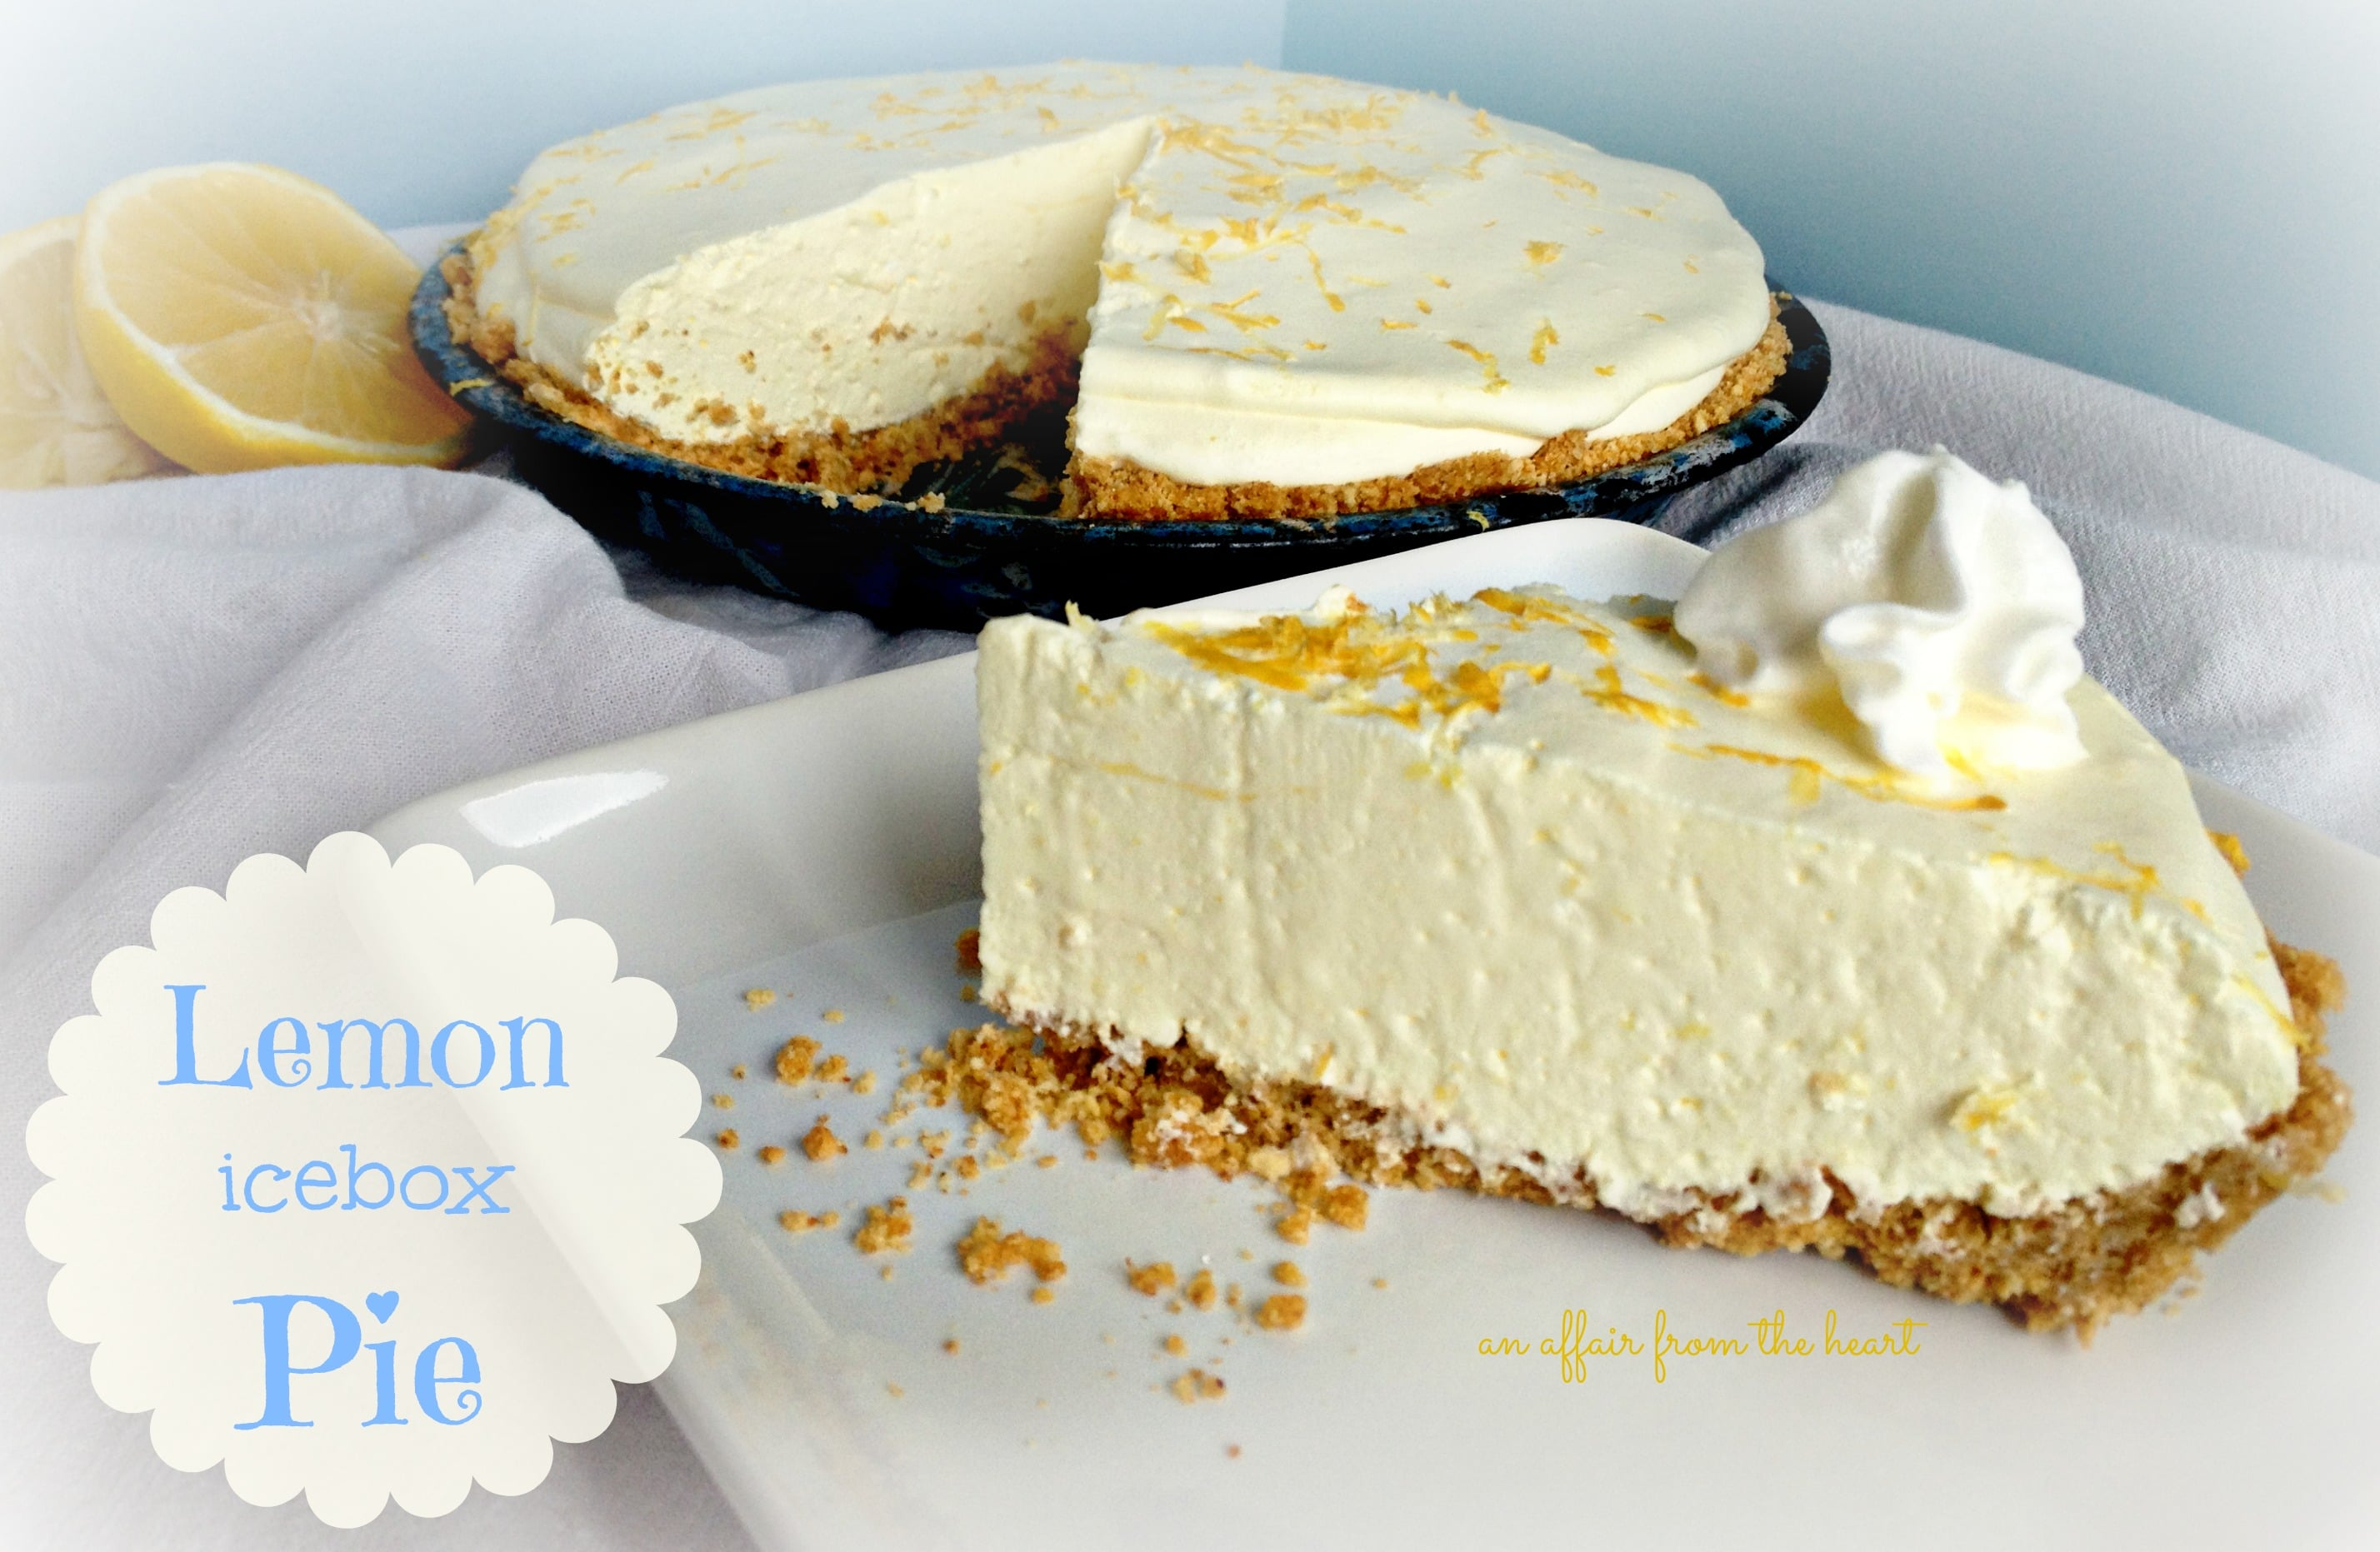 Simple Lemon Icebox Pie Easy No Bake 4 Ingredient Dessert